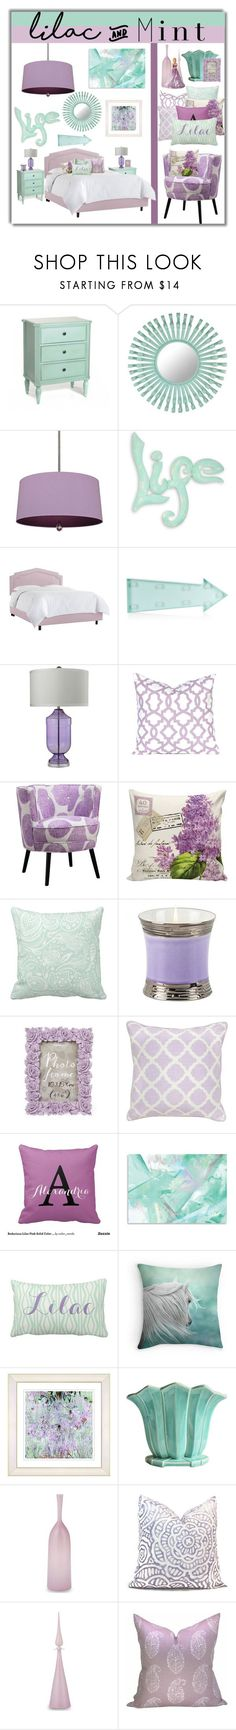 """""""Lilac and Mint"""" by joyce-williams ❤ liked on Polyvore featuring interior, interiors, interior design, home, home decor, interior decorating, Florence Broadhurst, Williamsburg, NOVICA and New Look"""